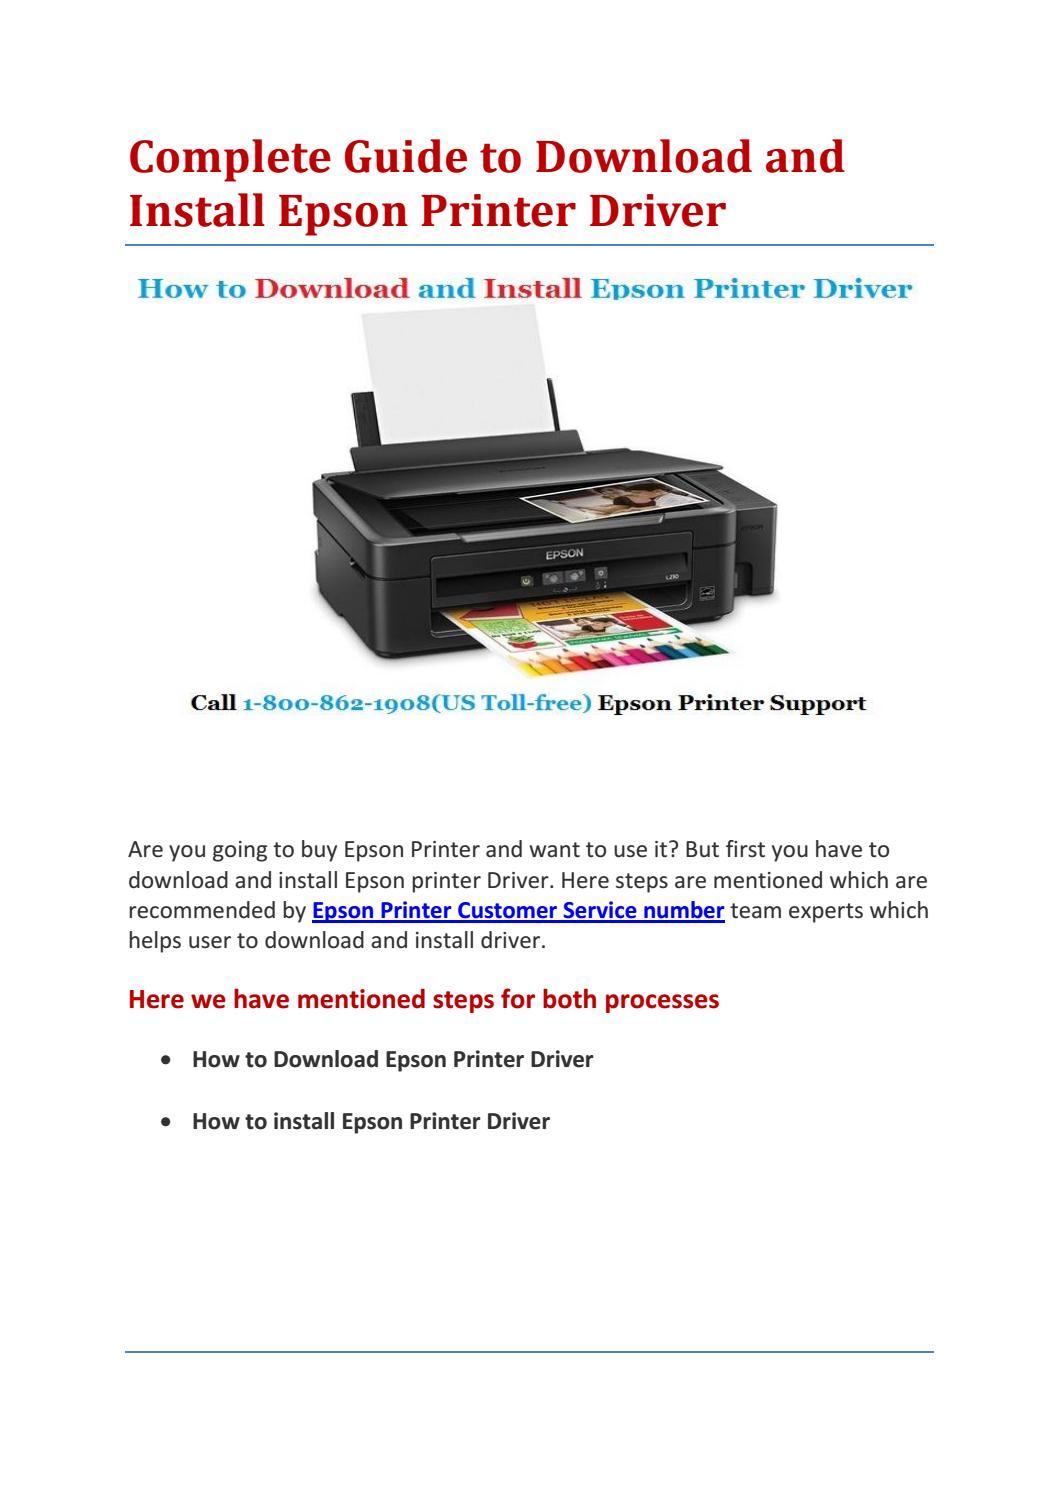 Complete guide to download and install epson printer driver